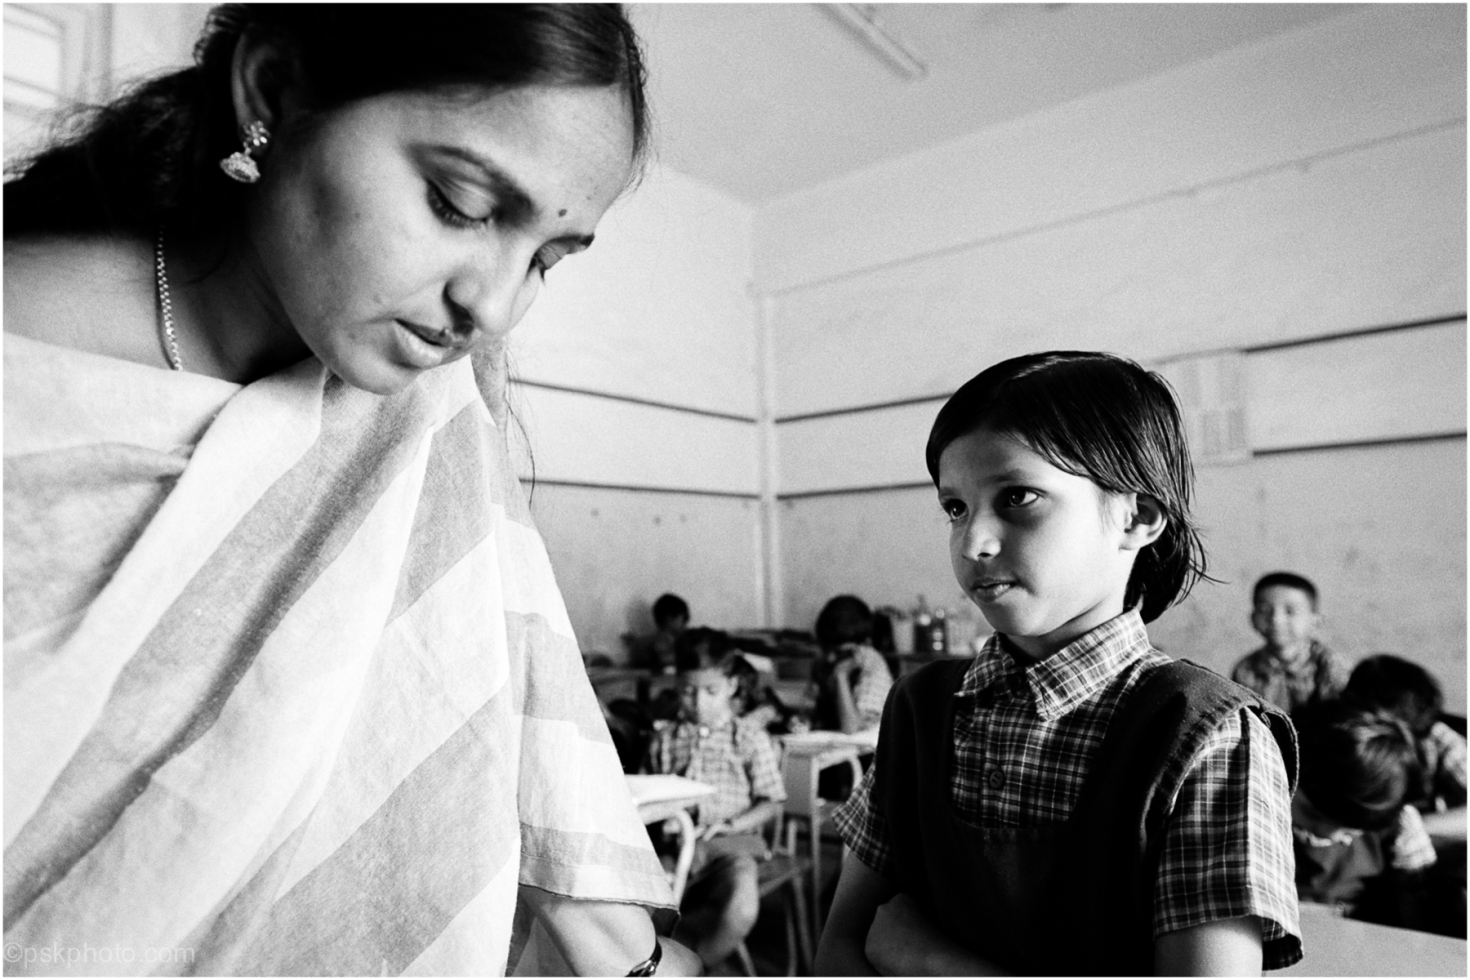 A child waits with slight anticipation for her marks. IDPL School, Telangana, India, 2014